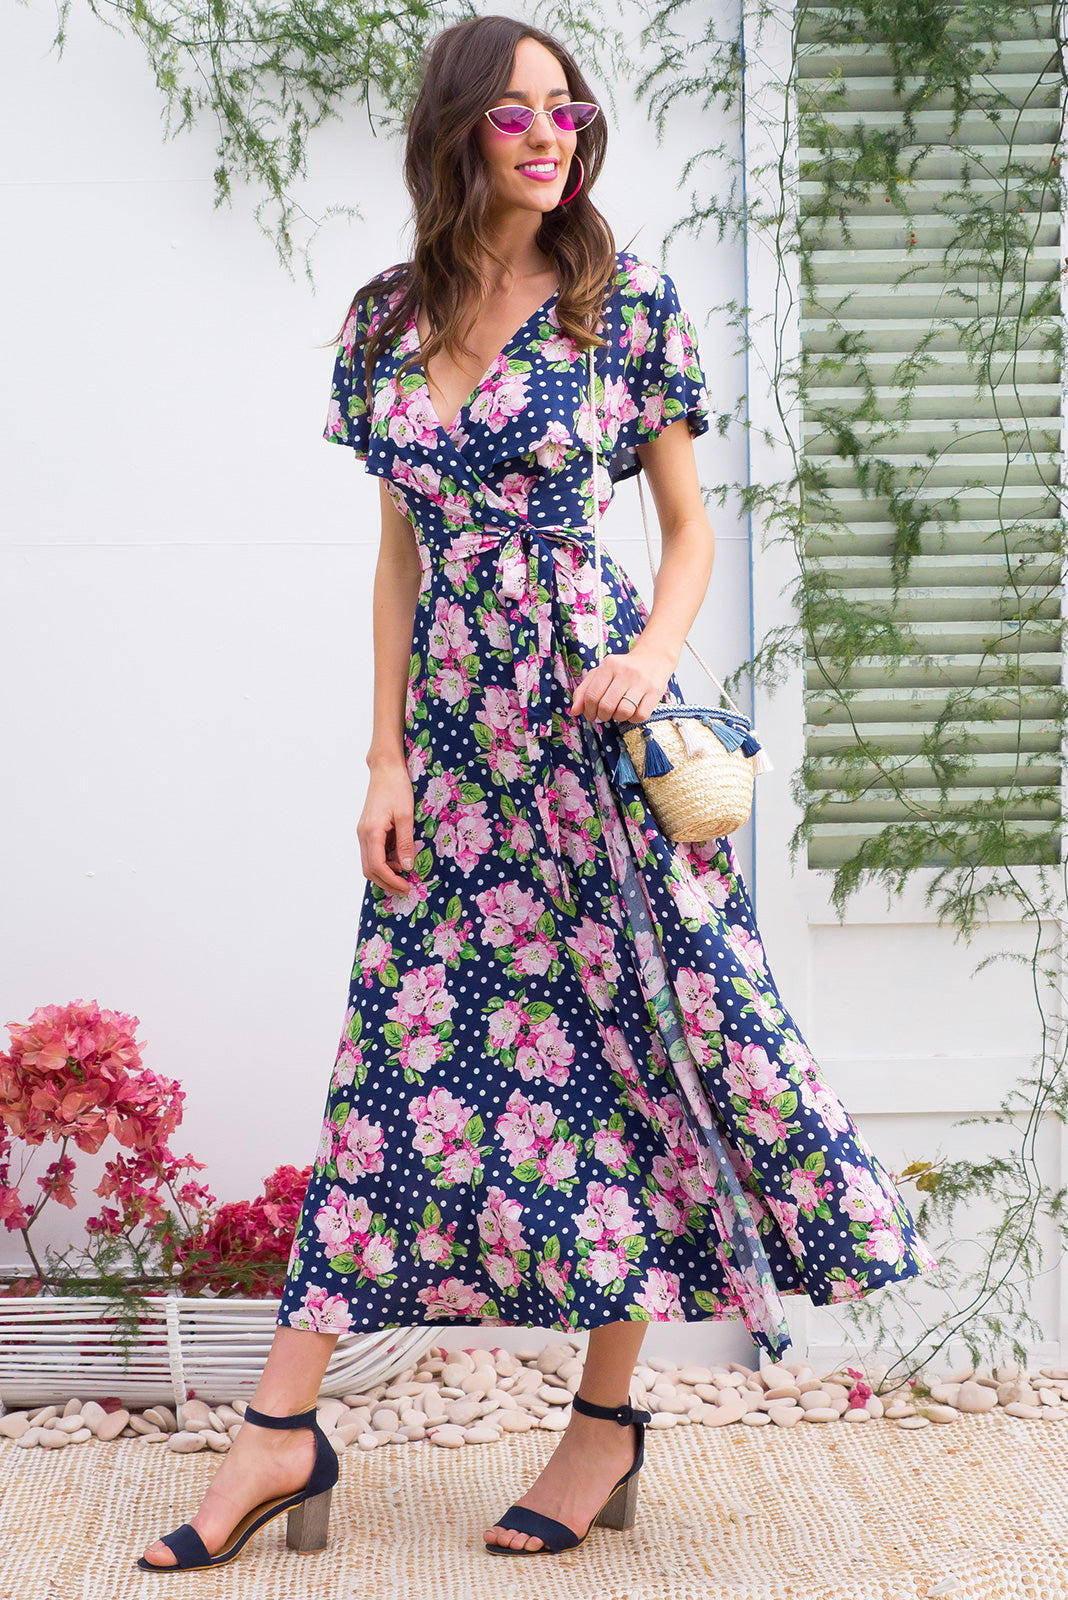 Rio Rita Sweet Spot Maxi vintage inspired Wrap Dress with a full frill around the neck and sleeve in a vibrant blue floral and spot print on rayon